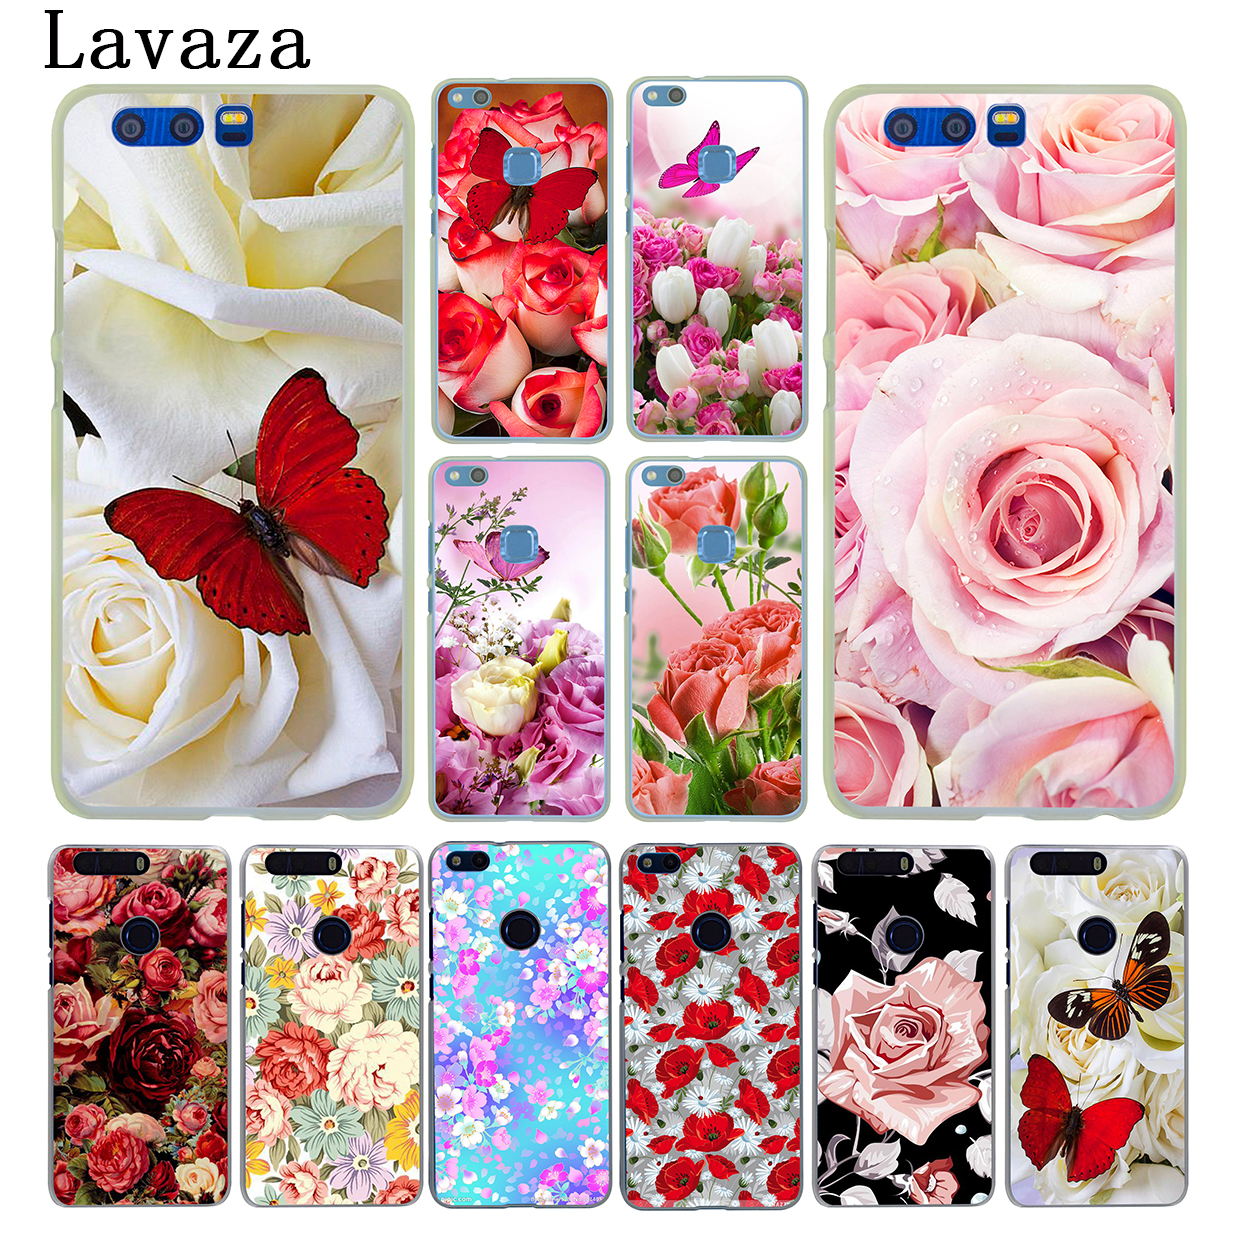 Lavaza Red butterfly on white roses flower Hard Case for Huawei Y7 Y6 Y5 Y3 II 2017 G7 & Honor 9 8 Lite 7 7X 6 6A 4C 4X Cover